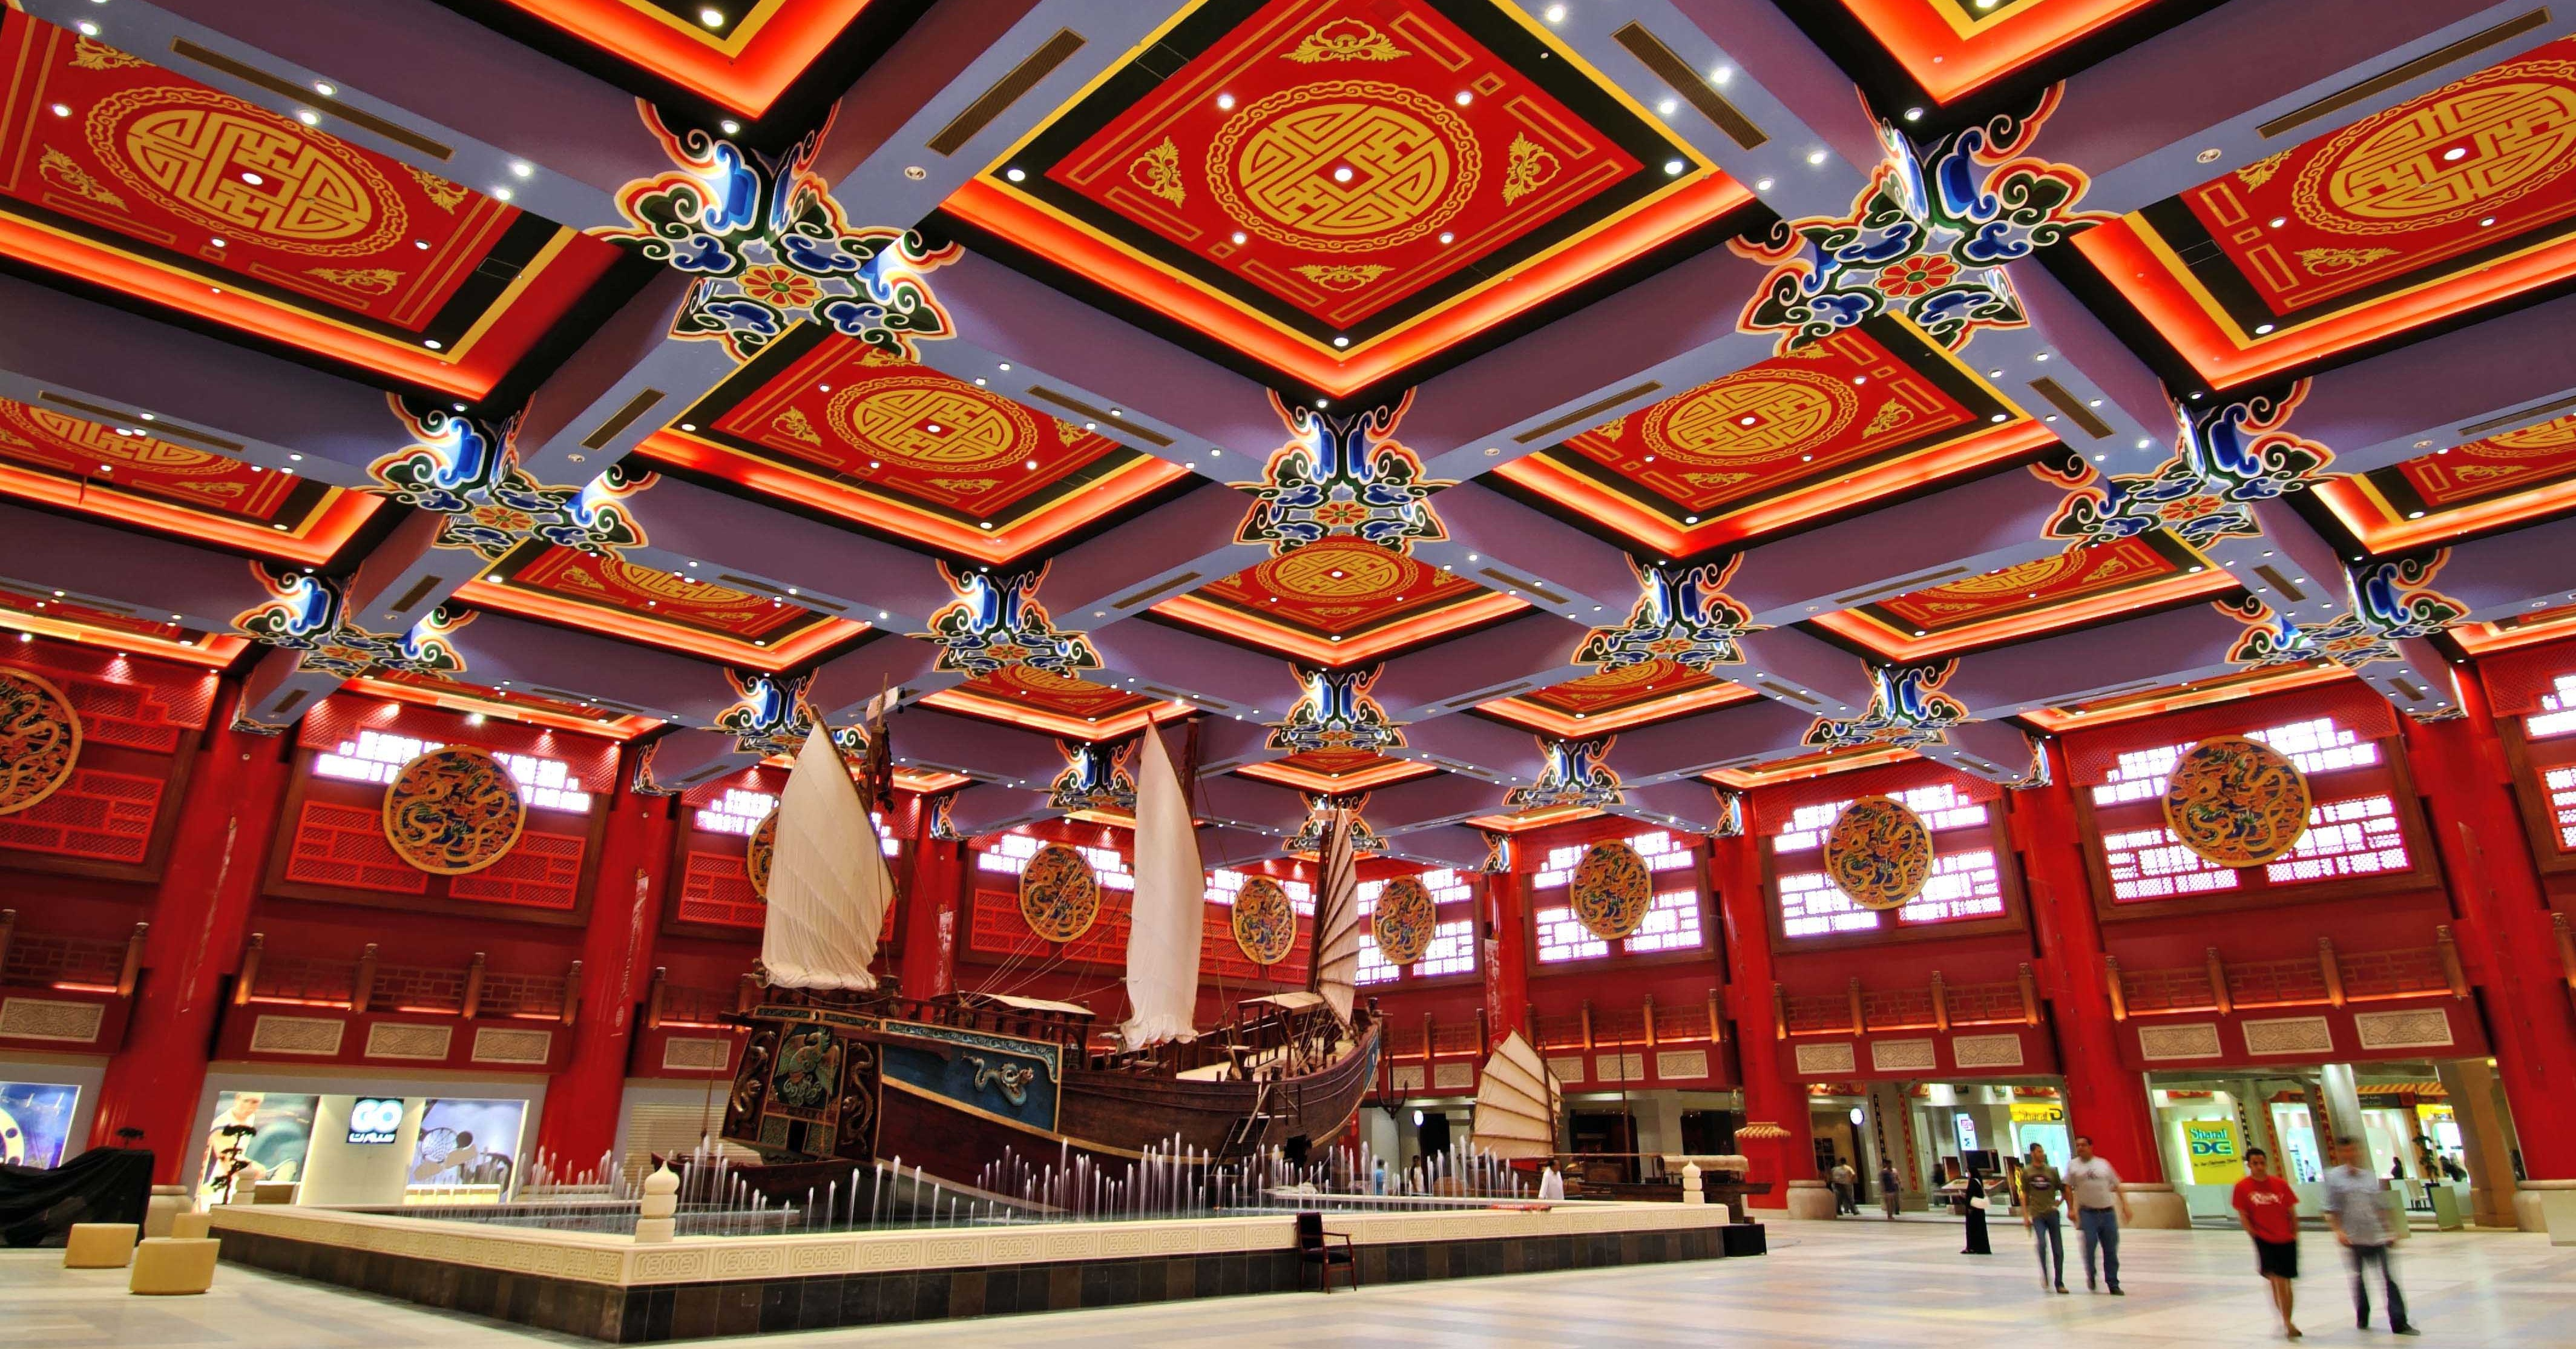 What to do at ibn battuta mall dubai